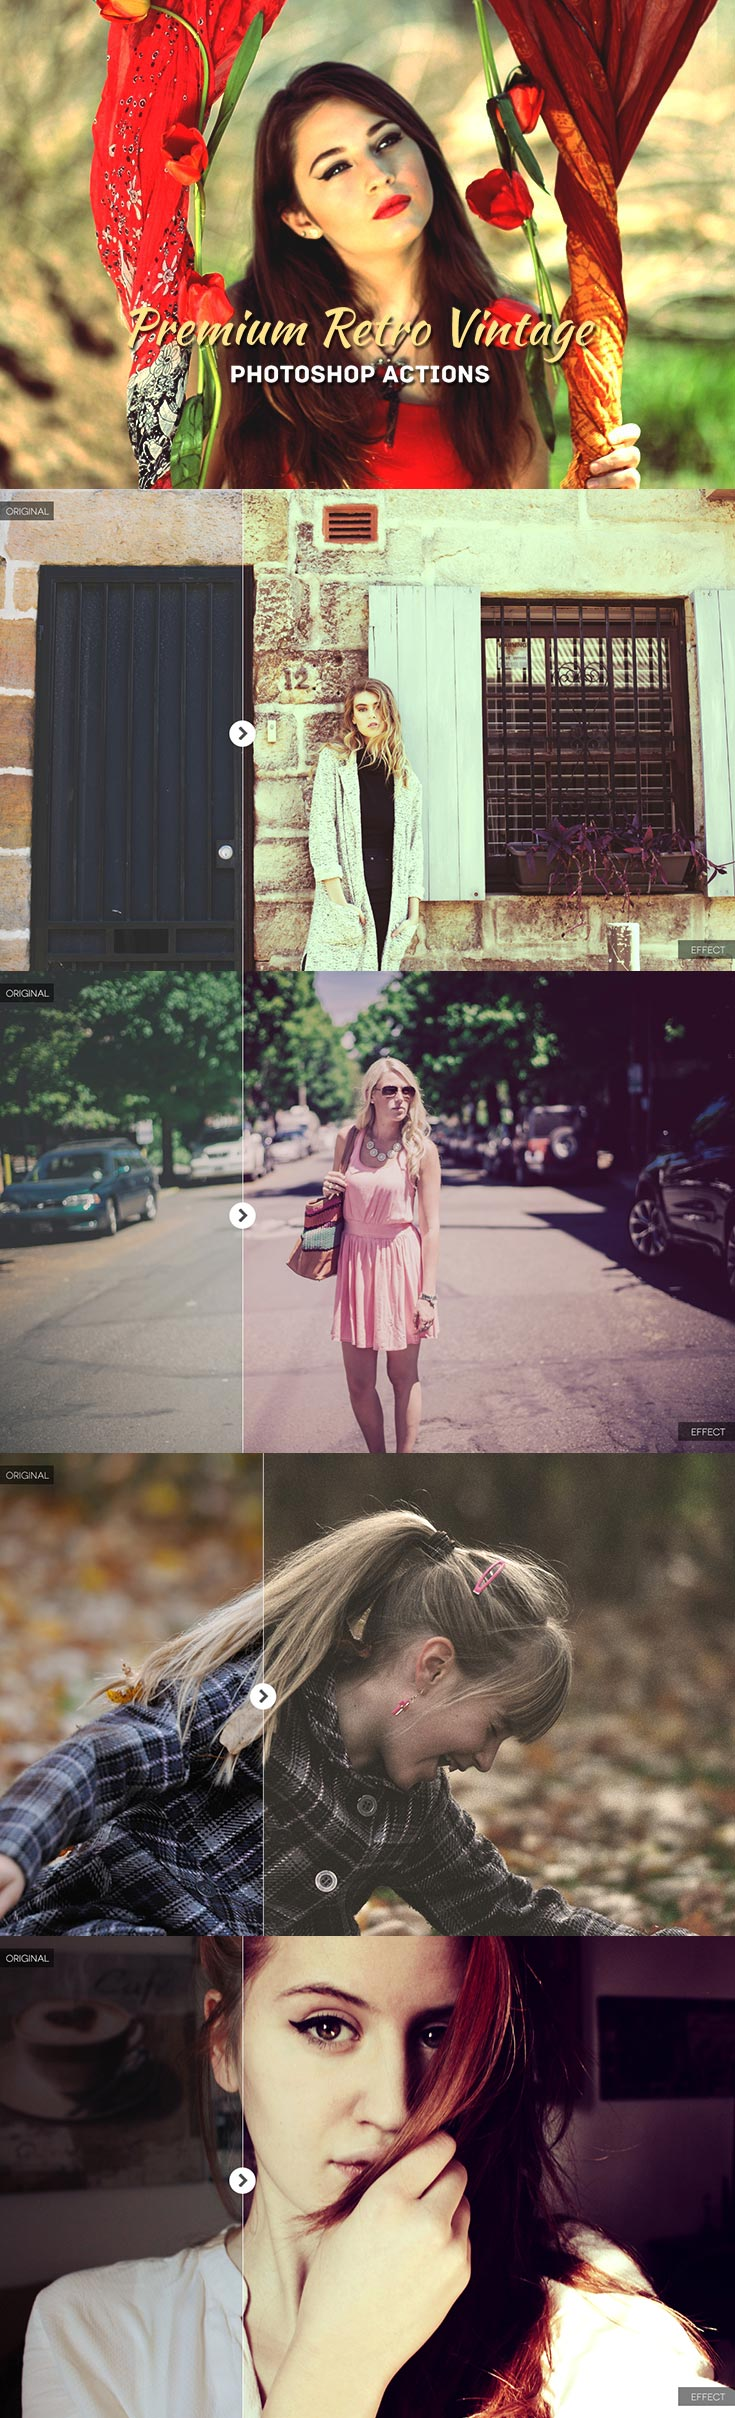 30 Free Retro Vintage Photoshop Actions Photography Editing, these effects are beautiful. These photoshop actions can be used in your RAW and JPEG images.